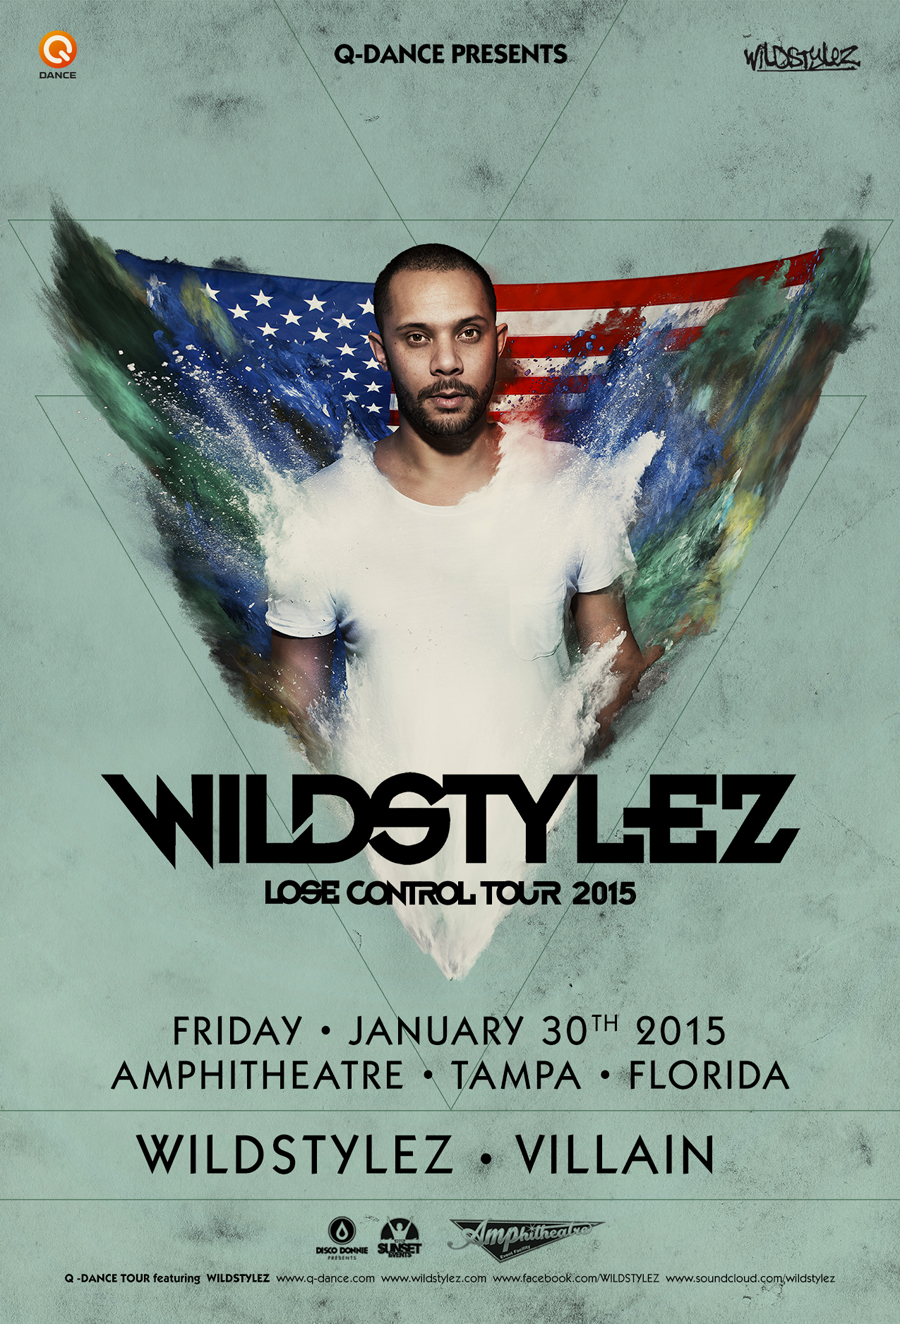 Q-Dance presents Wildstylez – Lose Control Tour 2015